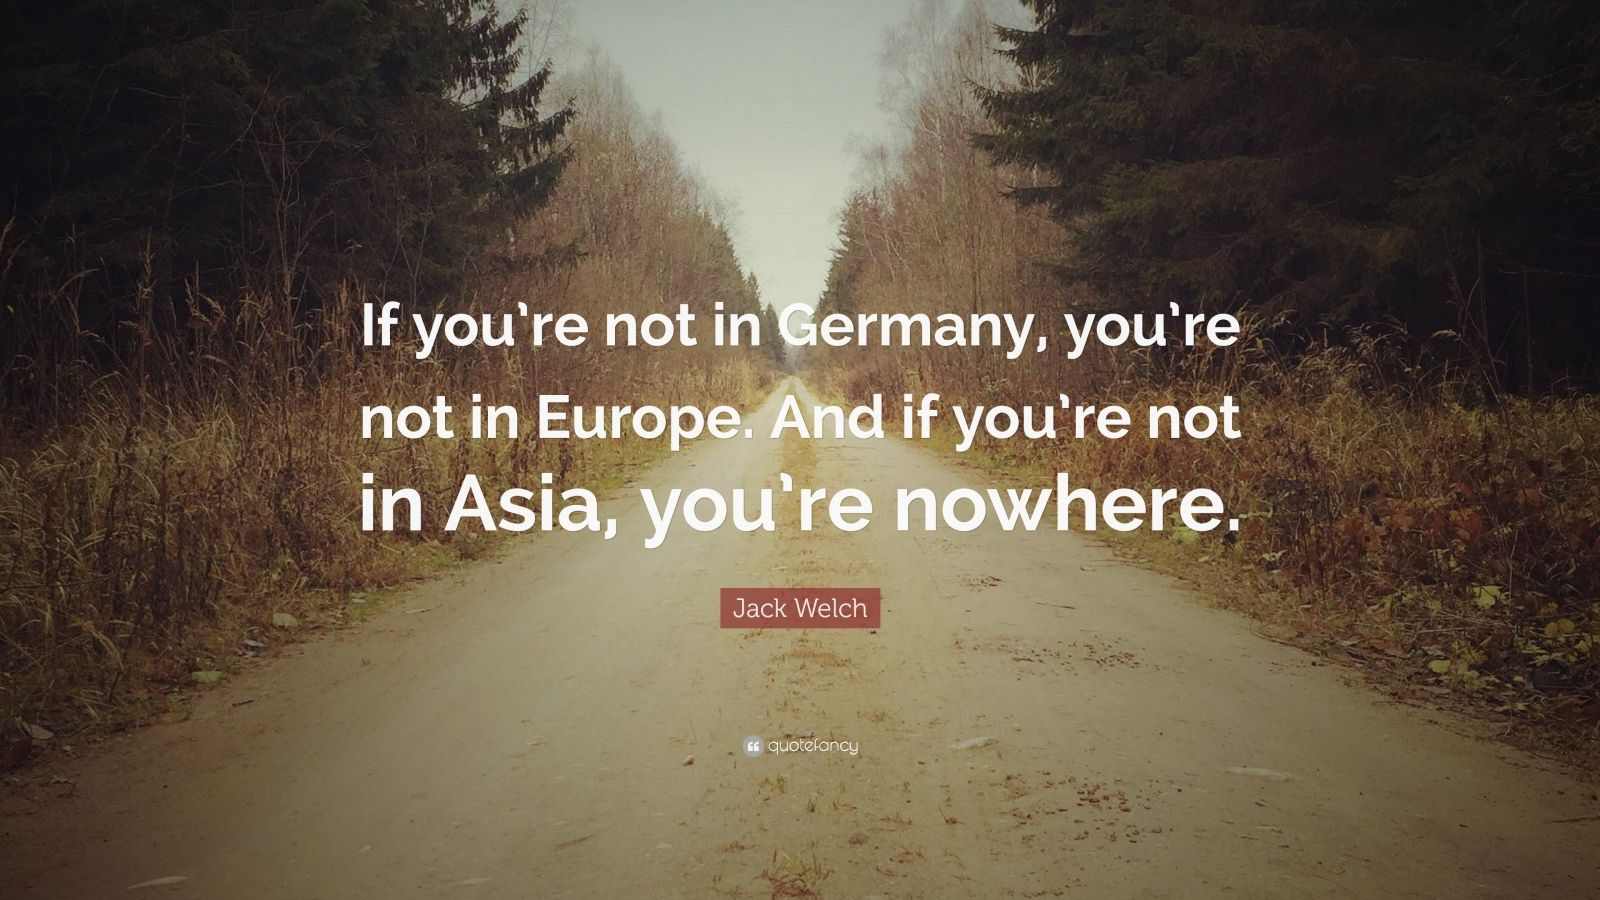 """Jack Welch Quote: """"If you're not in Germany, you're not in Europe. And if you're not in Asia, you're nowhere."""""""